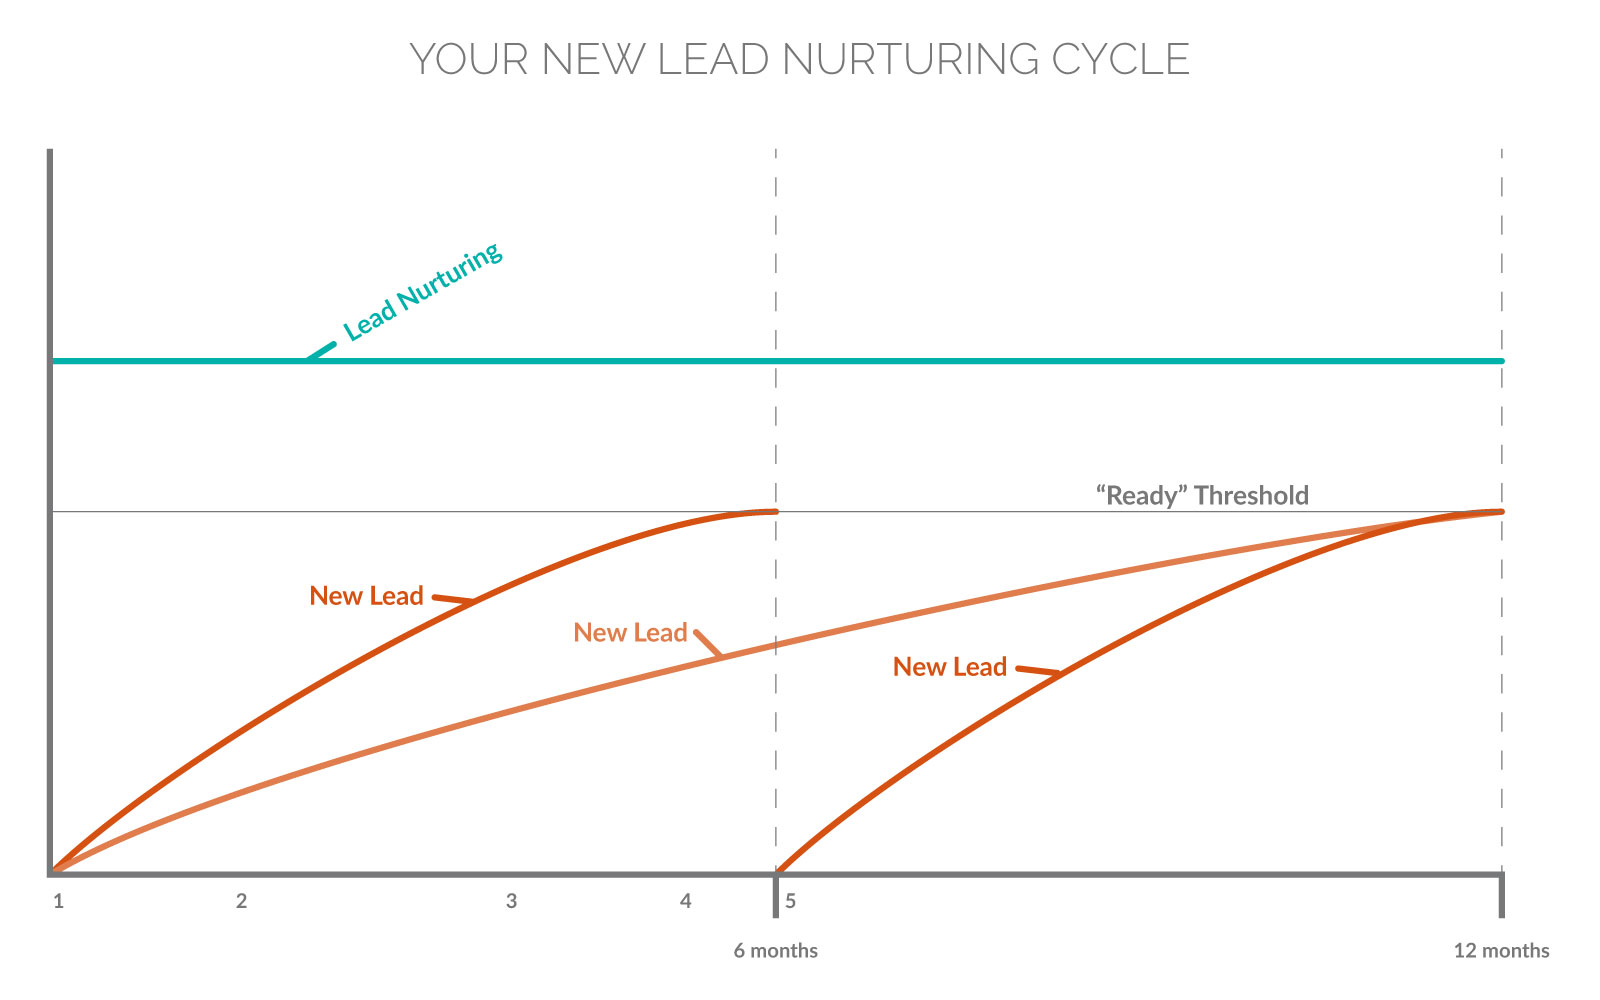 Generate Consistent Mortgage Leads—Your New Lead Nurturing Cycle